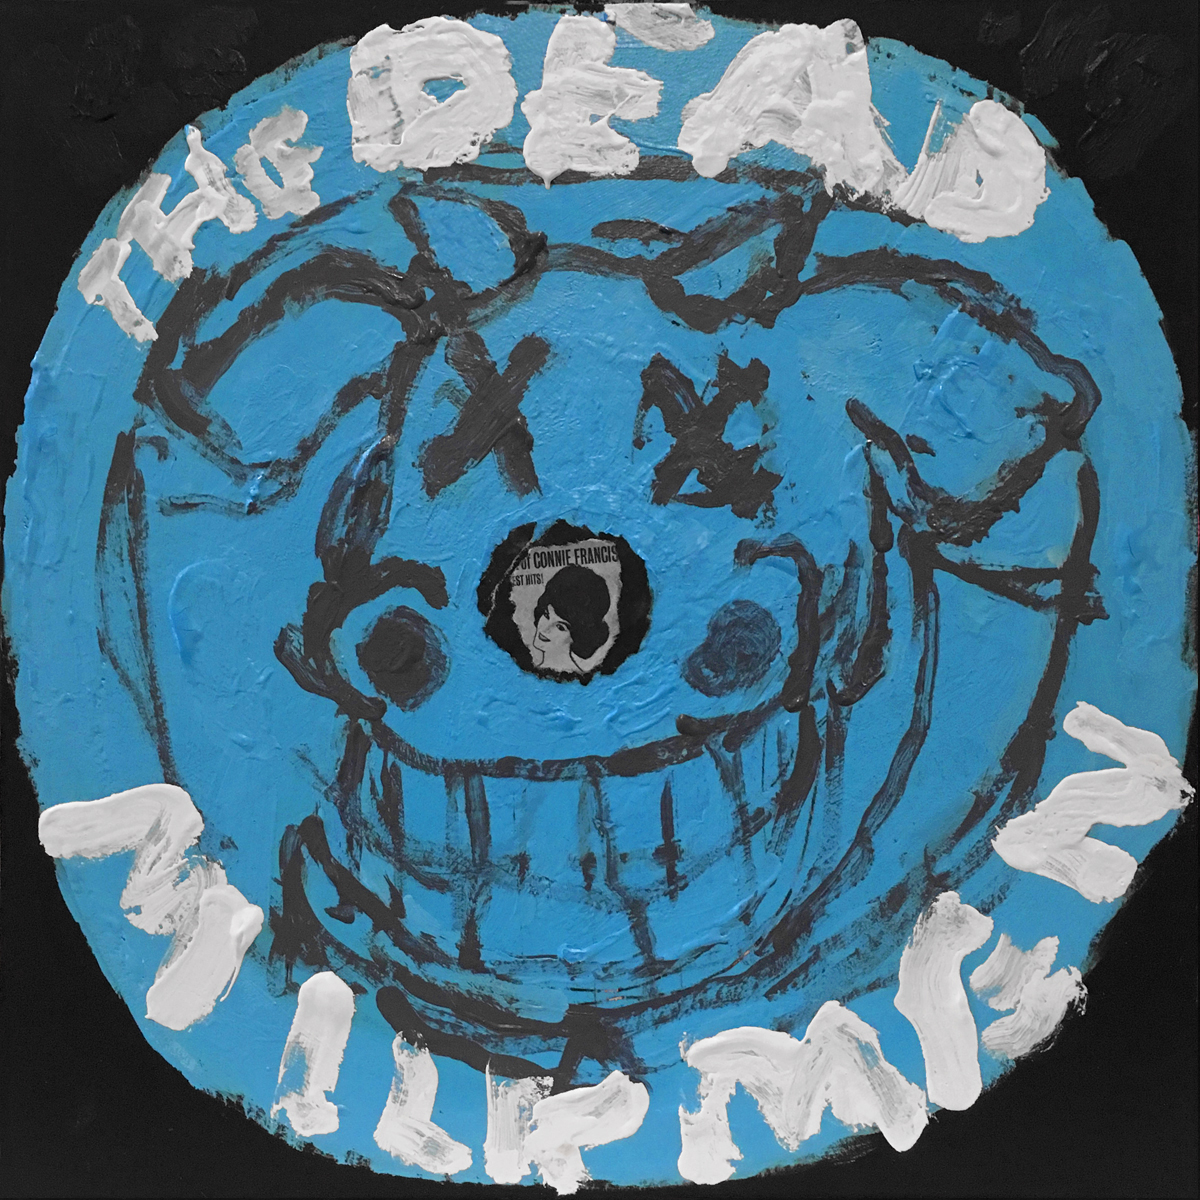 The Dead Milkmen (blue)